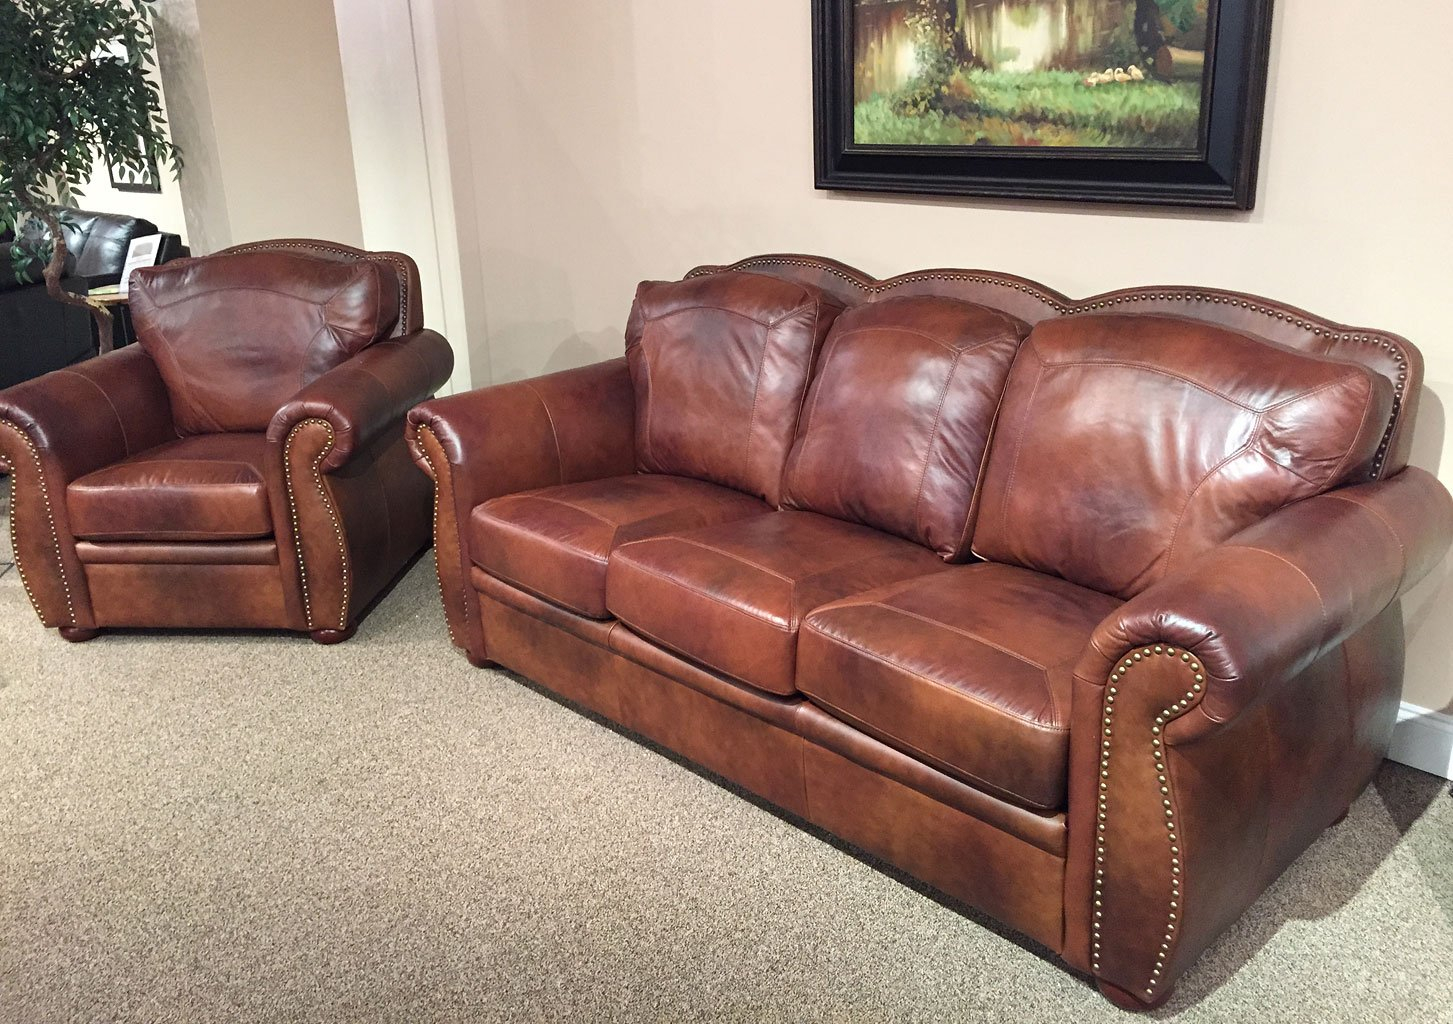 Arizona Leather Living Room Set Leather Italia 2 Reviews with regard to 10 Awesome Ways How to Craft Traditional Leather Living Room Sets